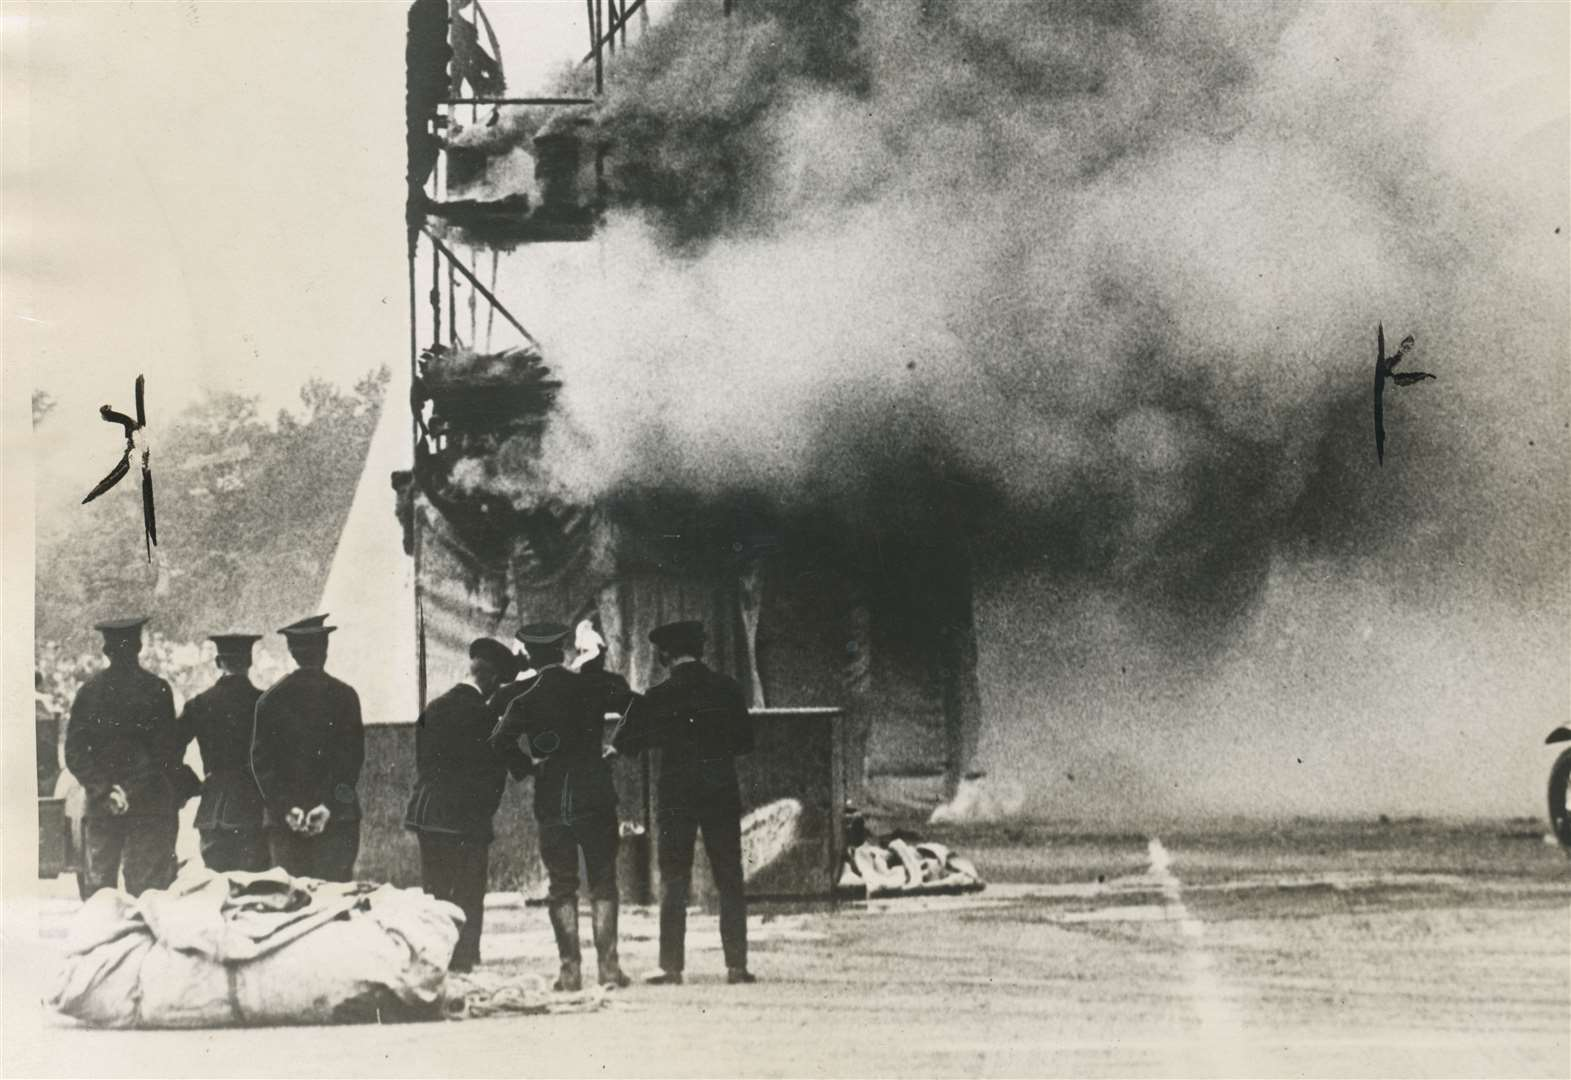 Anniversary of horrific fete fire